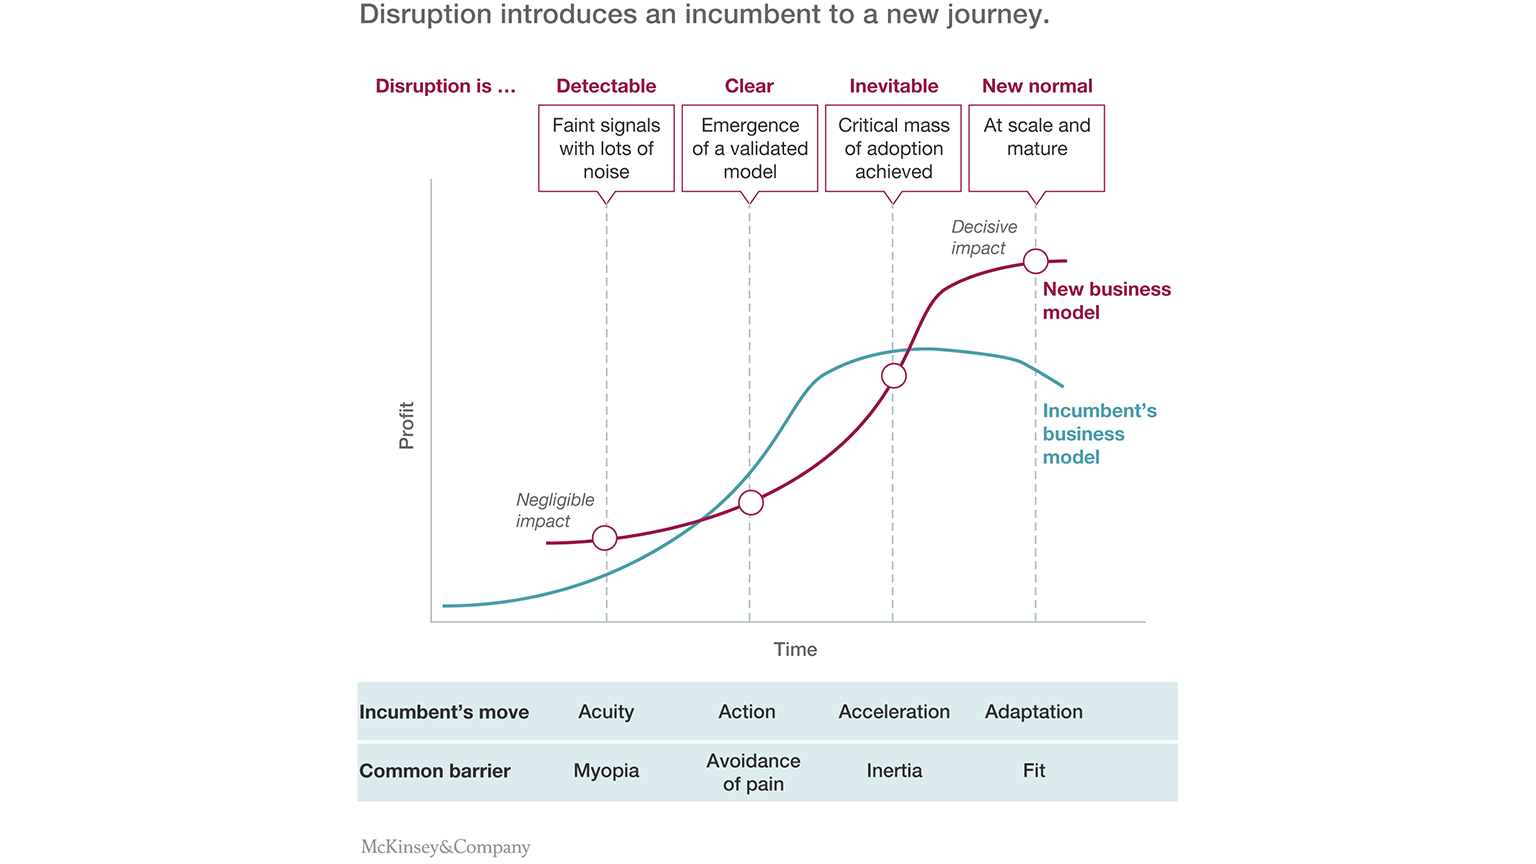 Disruption Introduces an Incumbernt New Journey